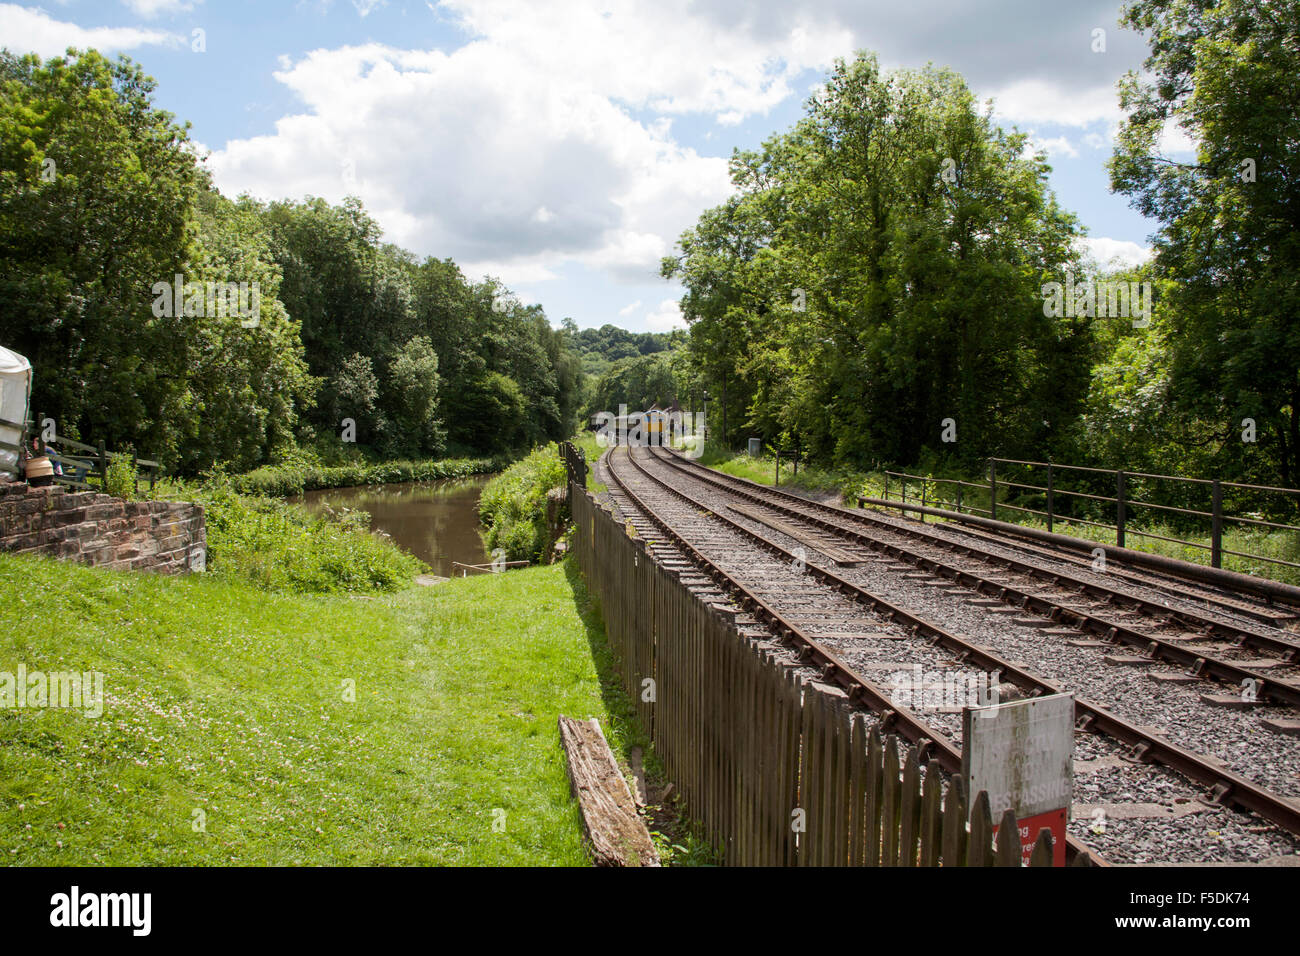 British Railways Class 33 Locomotive  Sophie at Consall Station on The Churnet Valley Railway Staffordshire England - Stock Image